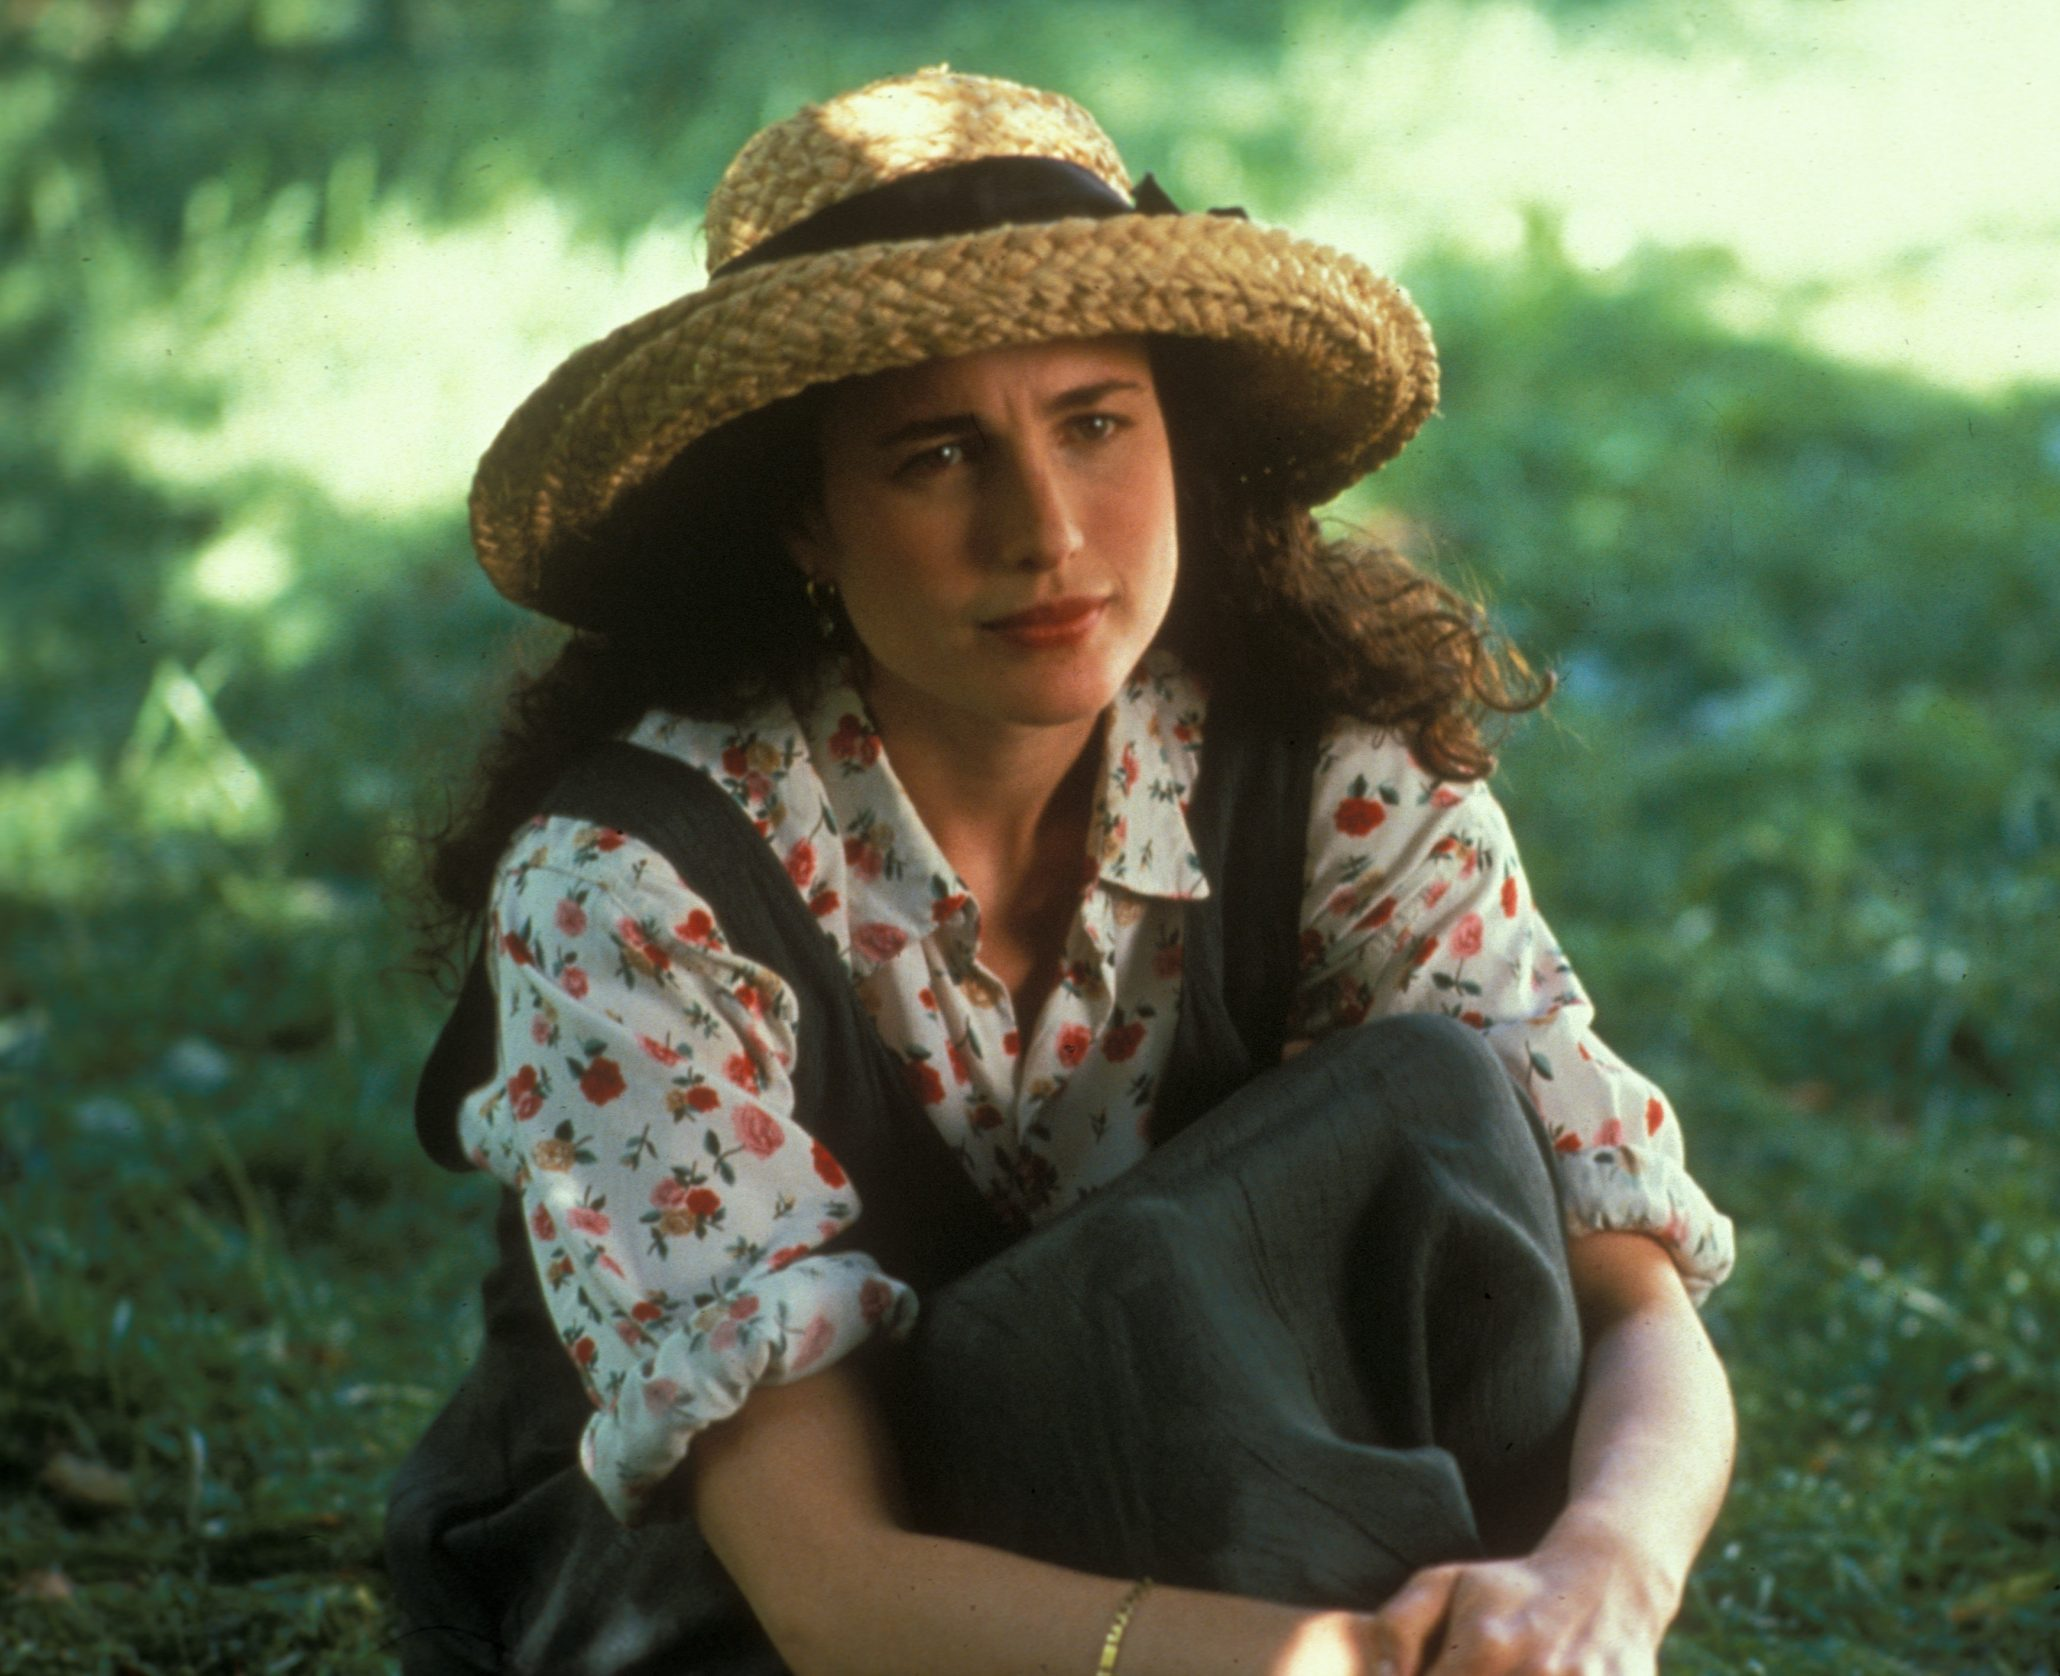 hd 16photo scaled e1621585800128 20 Things You Never Knew About Andie MacDowell